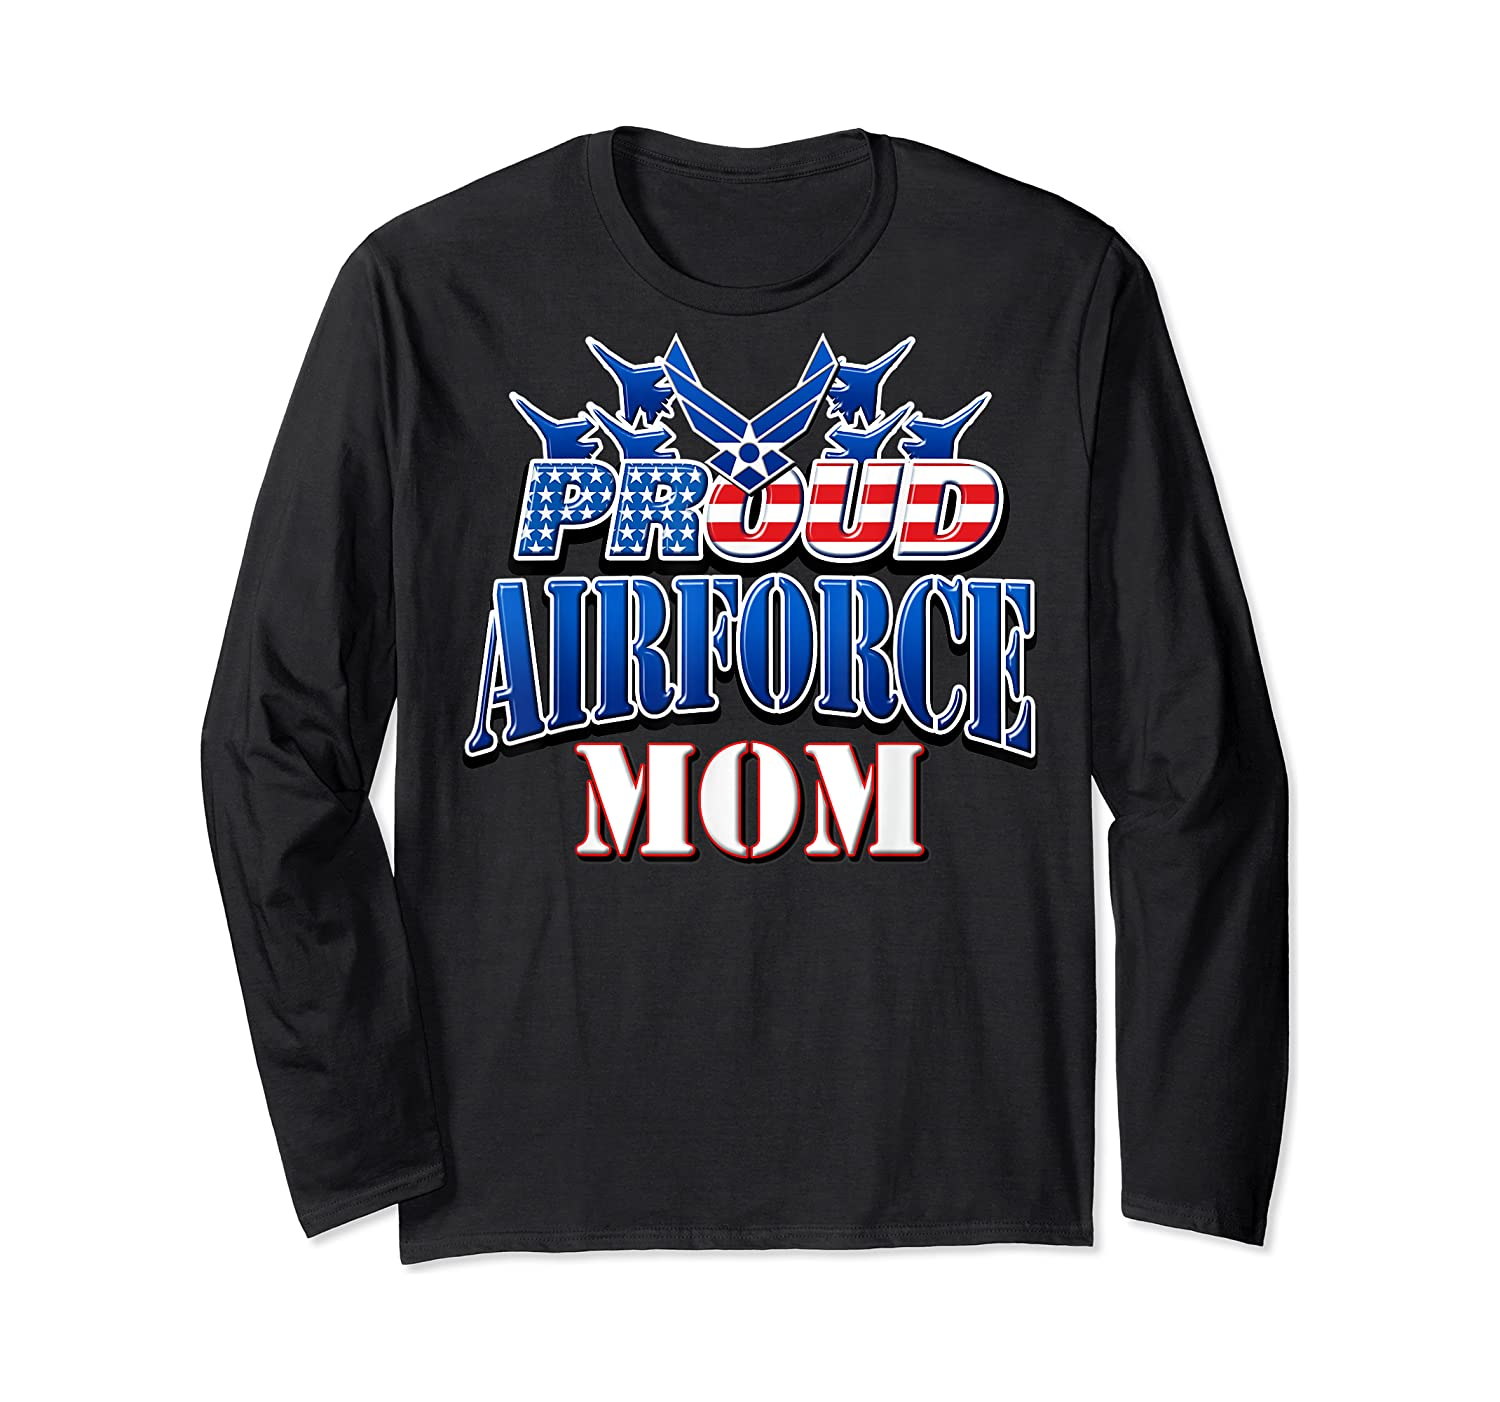 Proud Air Force Mom Shirt Mothers Day Patriotic Usa Military Long Sleeve T-shirt